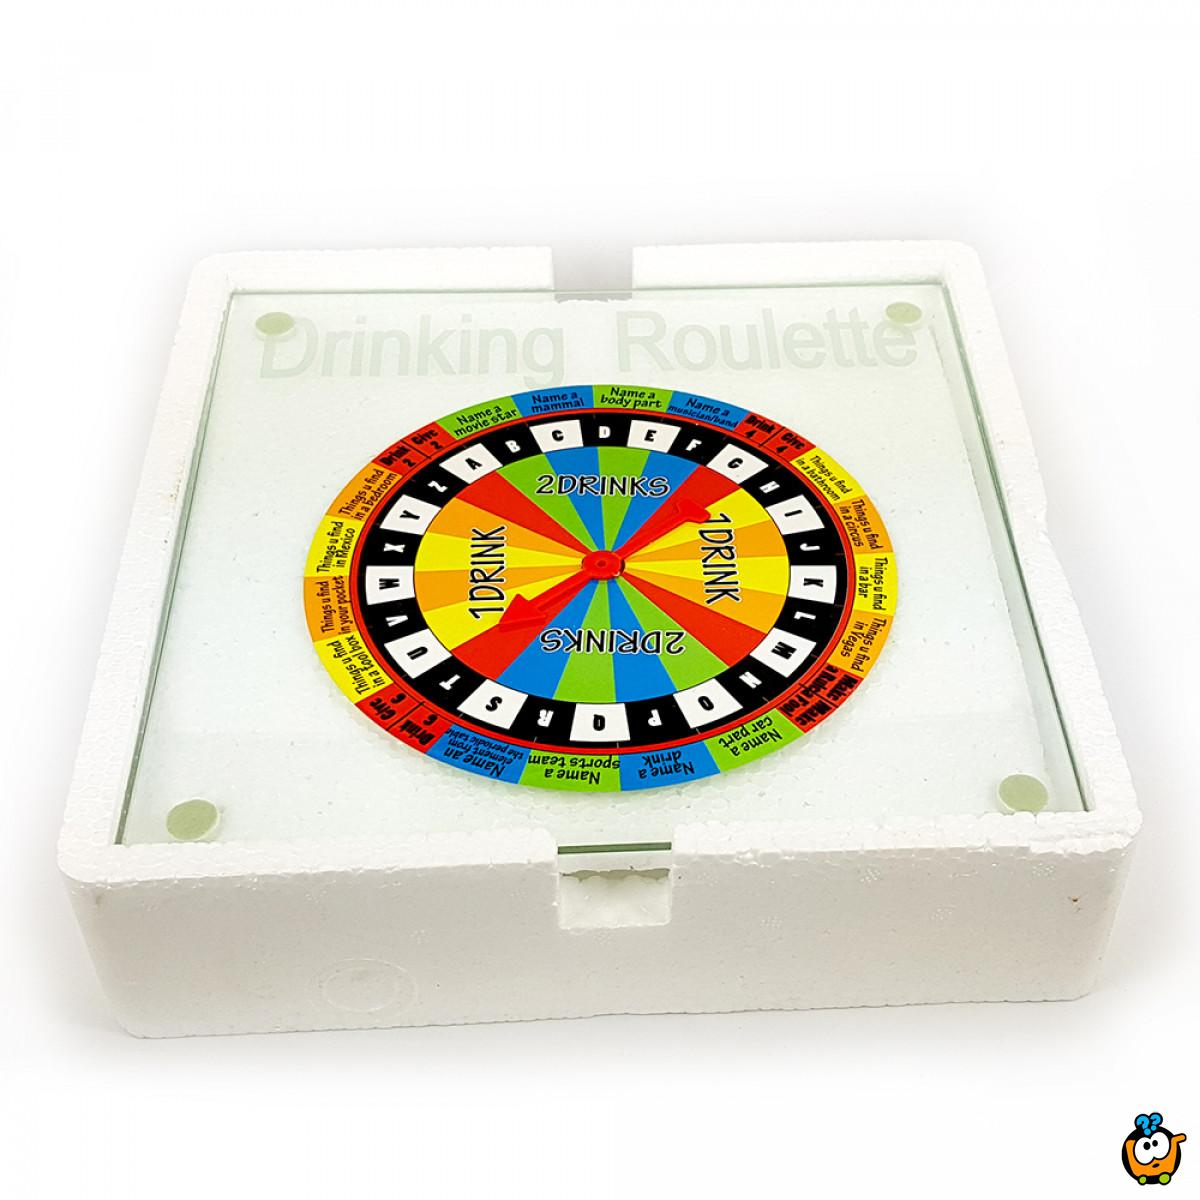 Shout Out Drinking Roulette Set - Pijani rulet